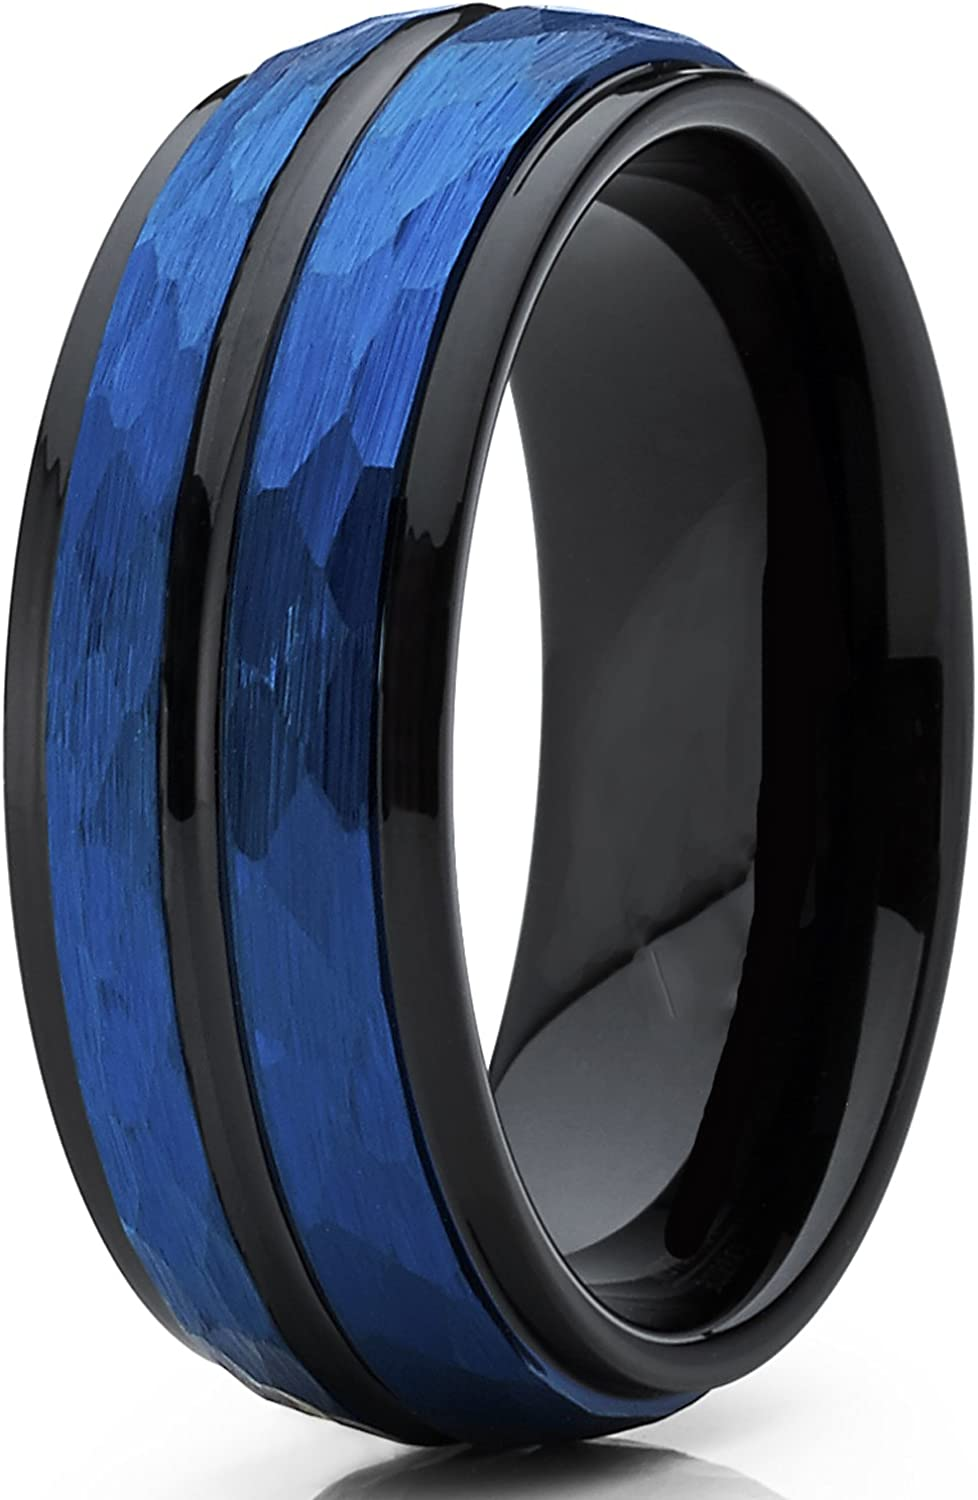 8mm Blue and Black Dome Tungsten Carbide Wedding Band Ring with Hammered Brushed Finish Metal Masters Co